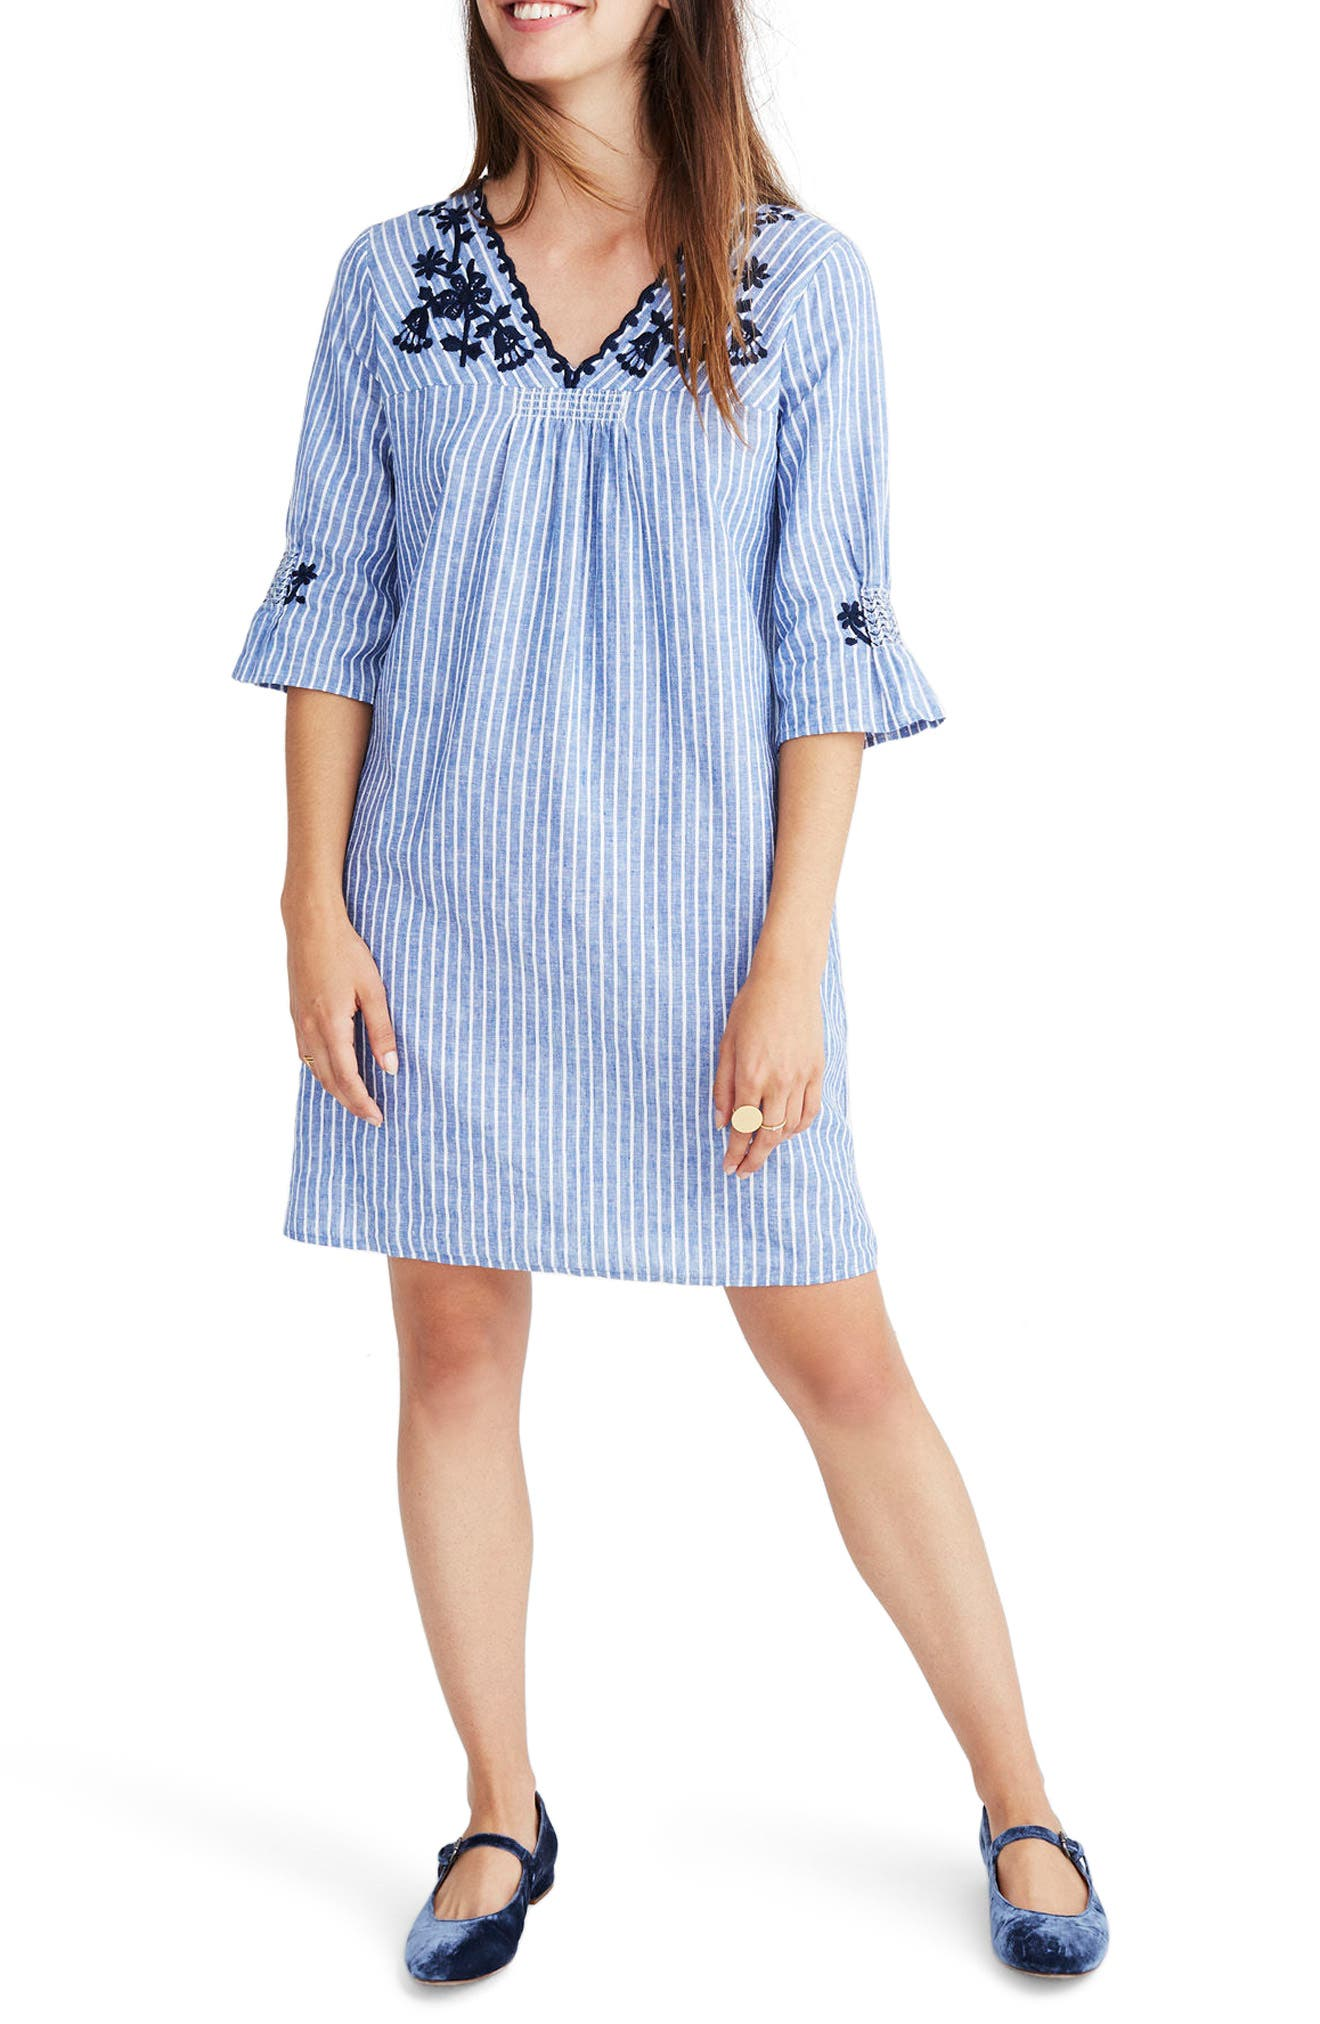 Alternate Image 1 Selected - Madewell Breeze Embroidered Shift Dress